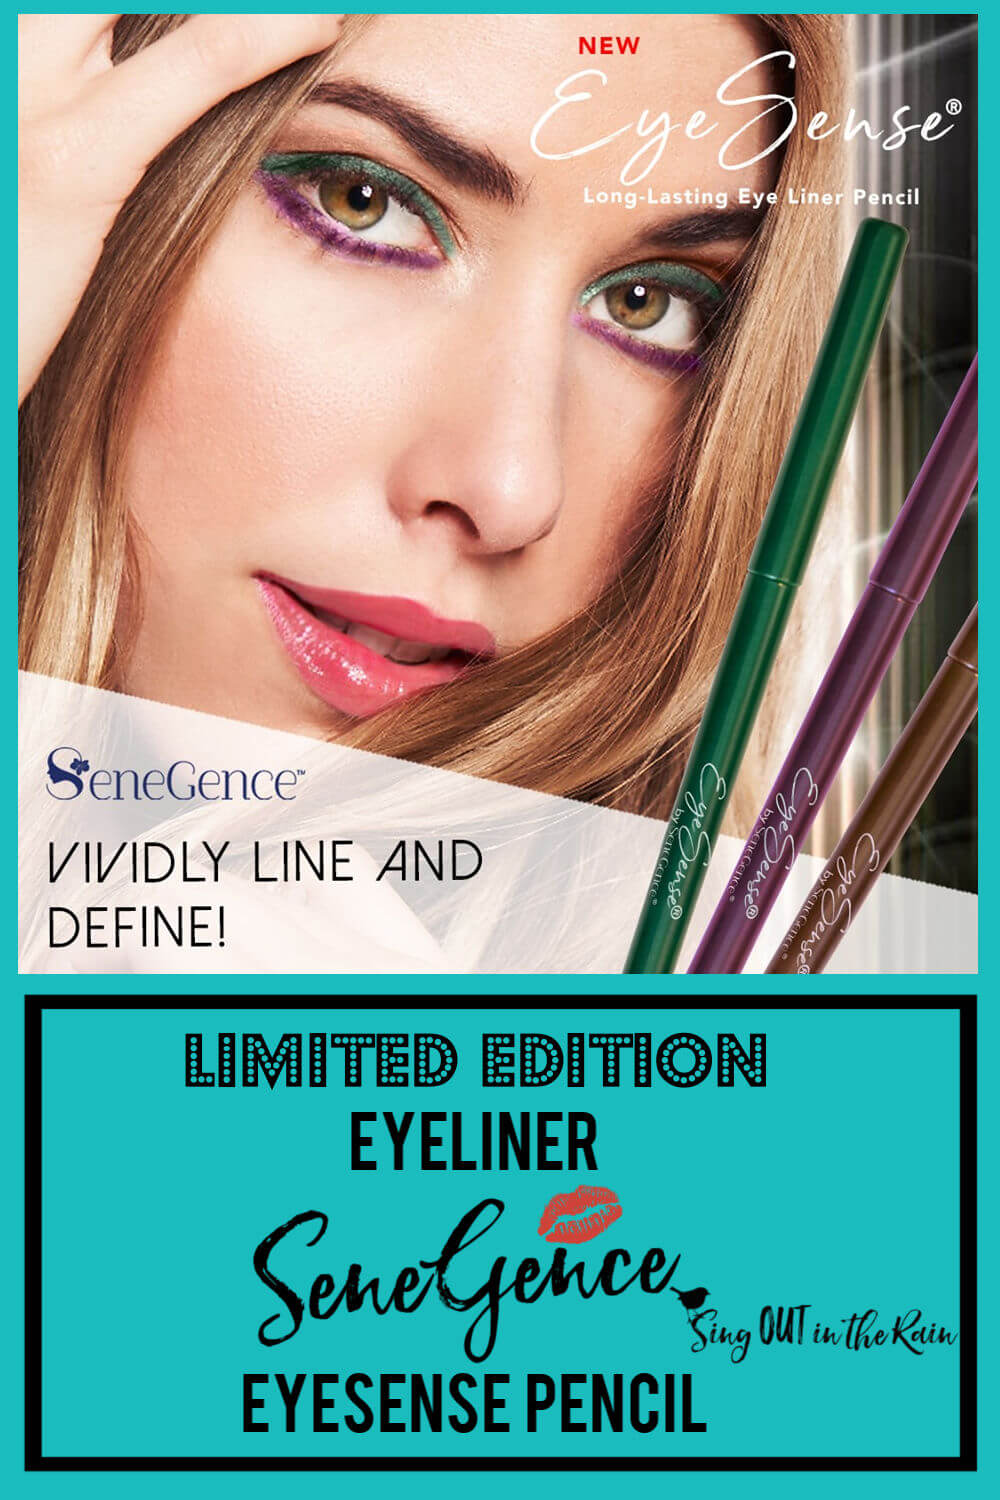 SeneGence has three Limited Edition Eyeliner Pencil colors : purple, green and brown. Create the perfect eye with this eyesense product by the same makers of LipSense.  #senegence #eyeliner #limitededition #eyesense